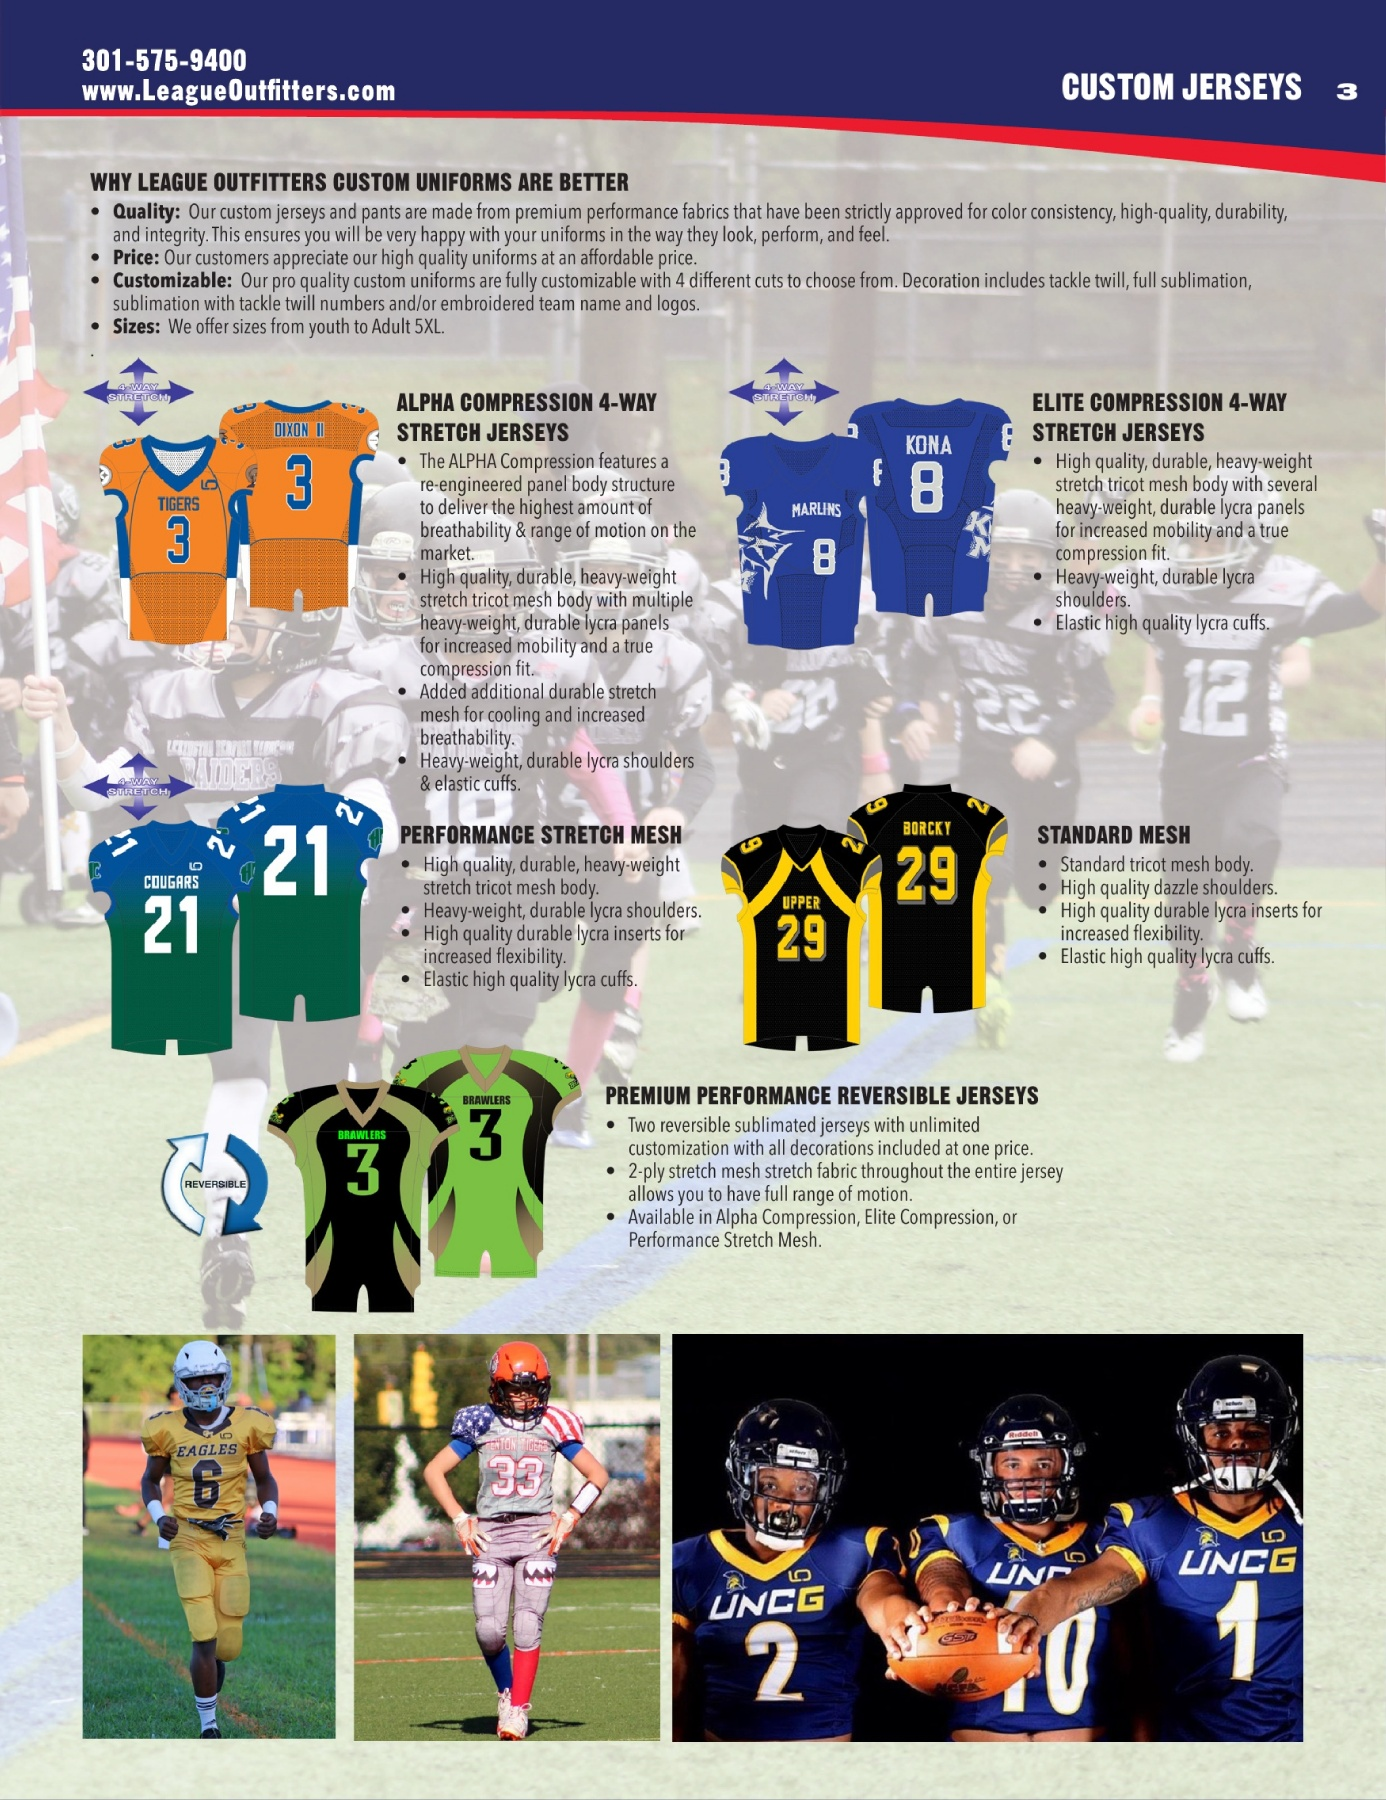 efde70c1 League Outfitters 2019 Football Catalog Pages 1 - 40 - Text Version |  AnyFlip